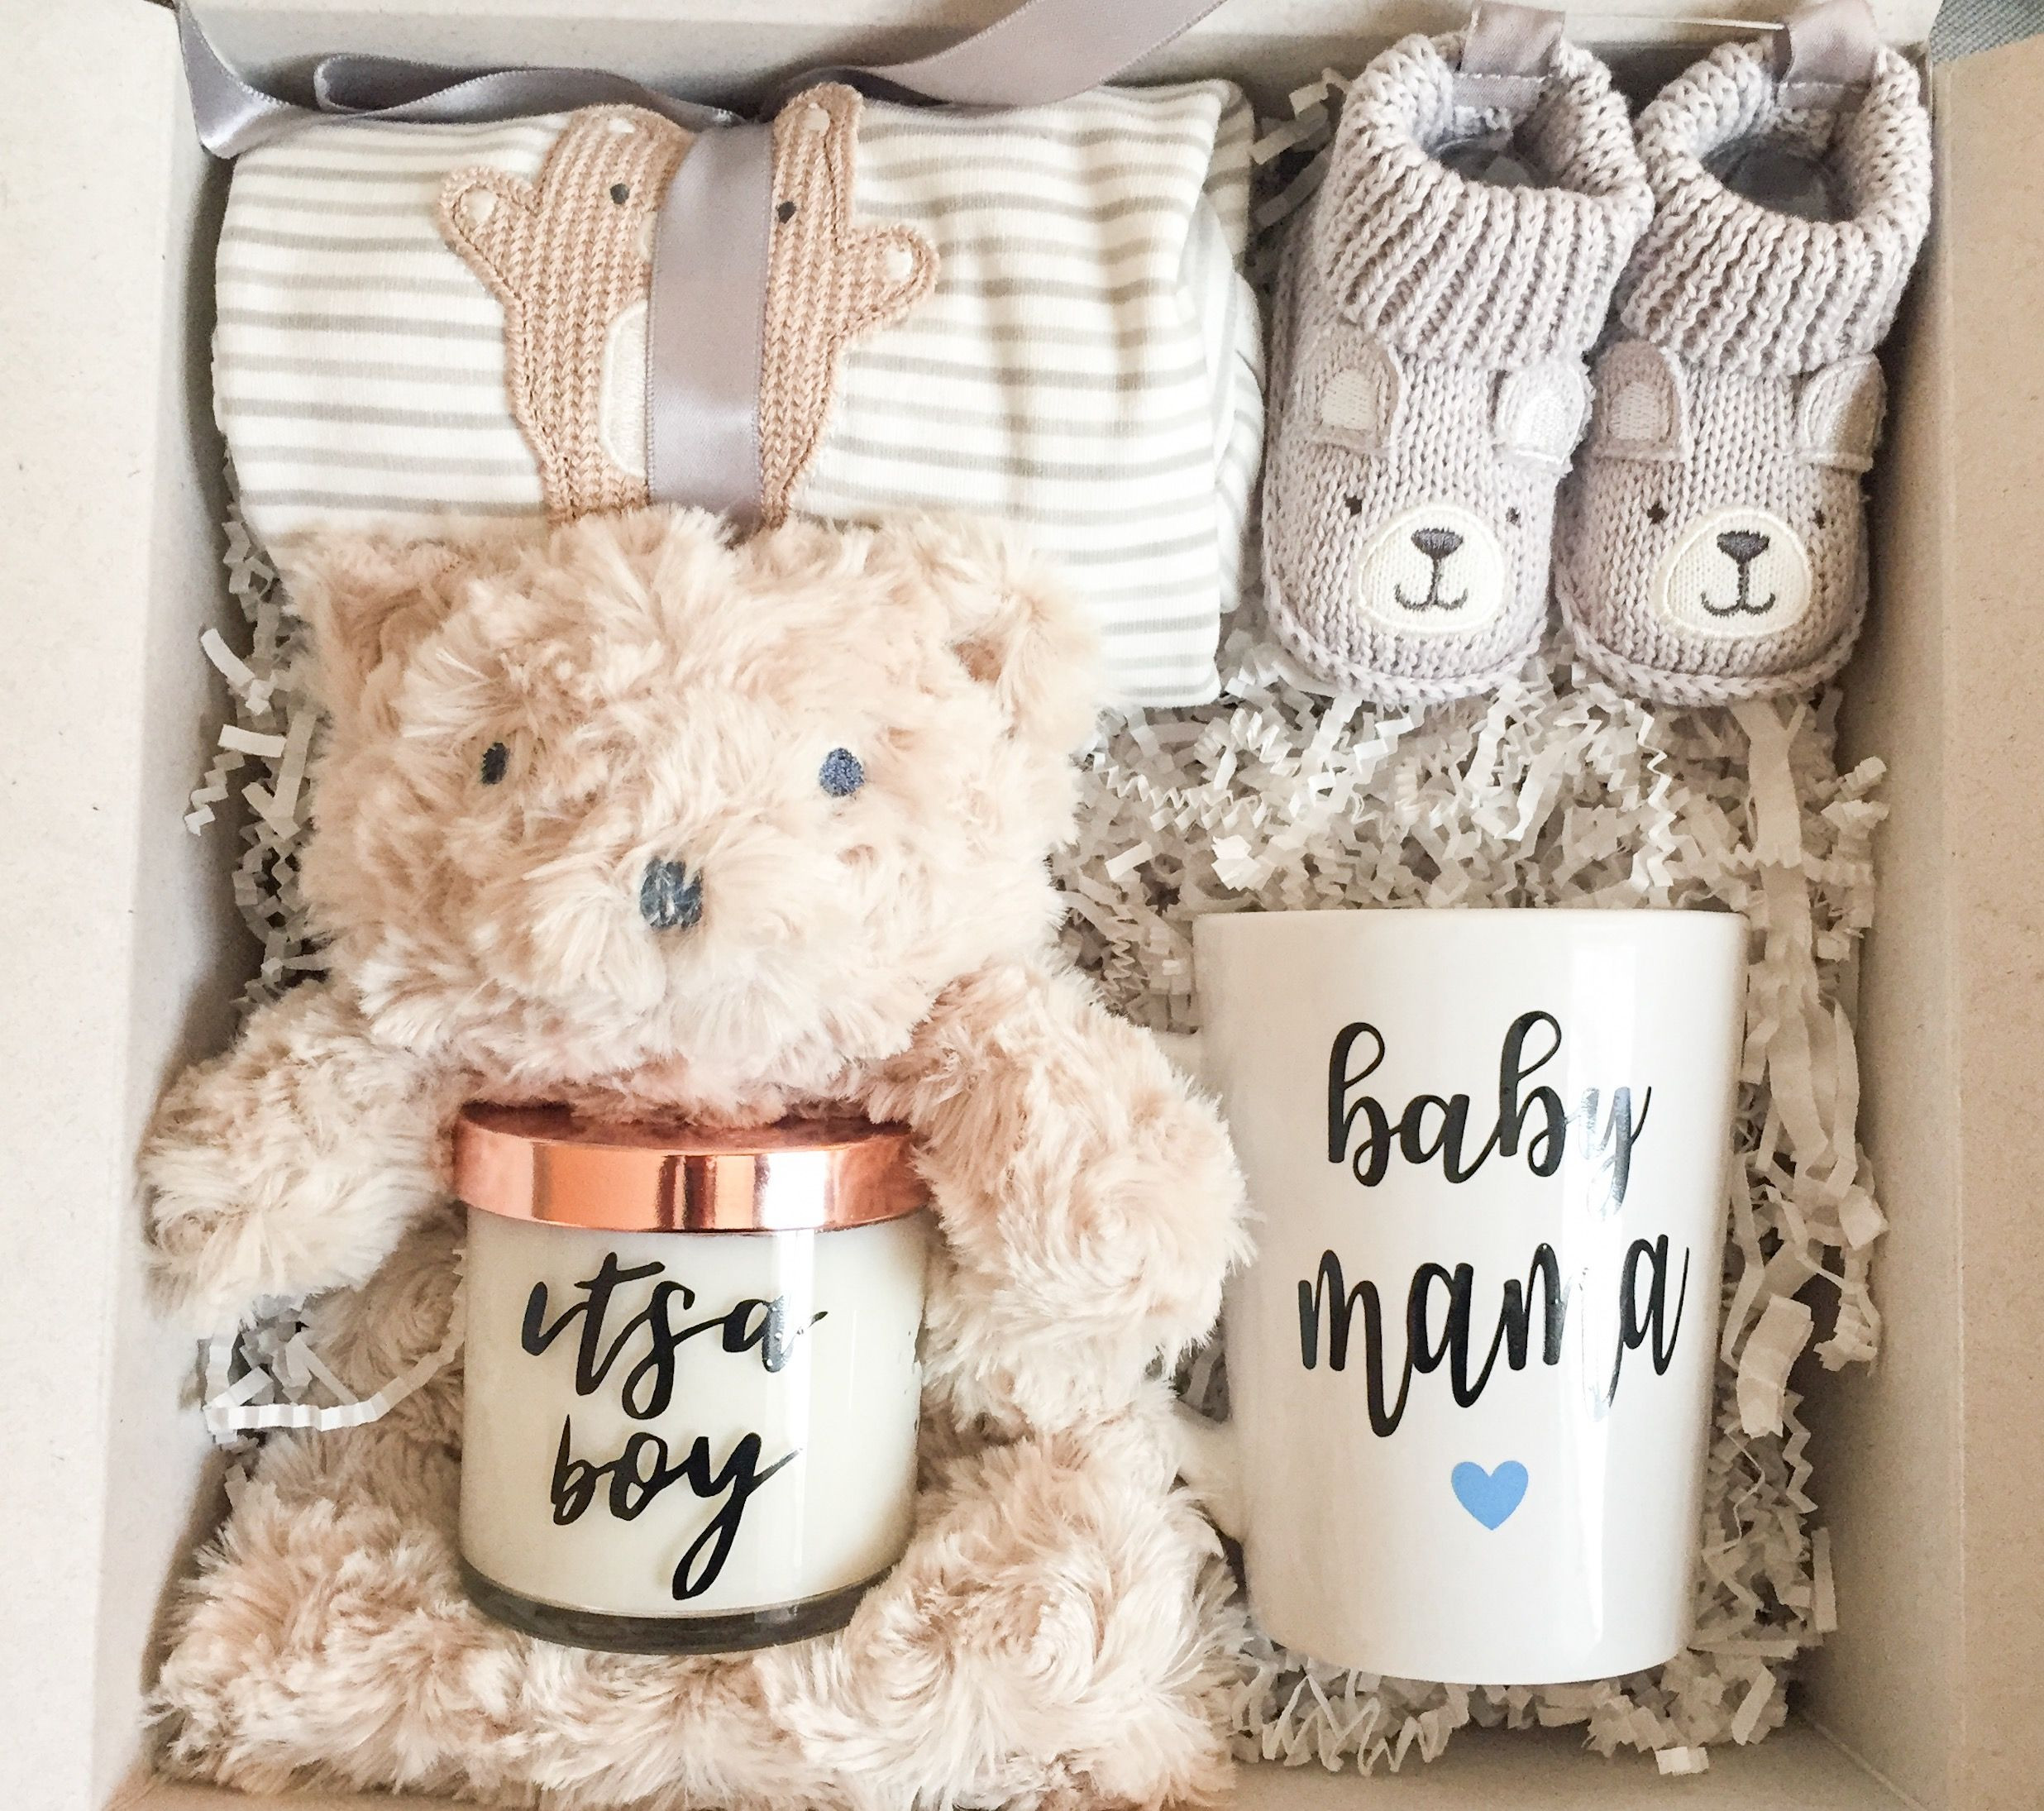 Baby Gender Reveal Gift Ideas  It's a Boy No 1